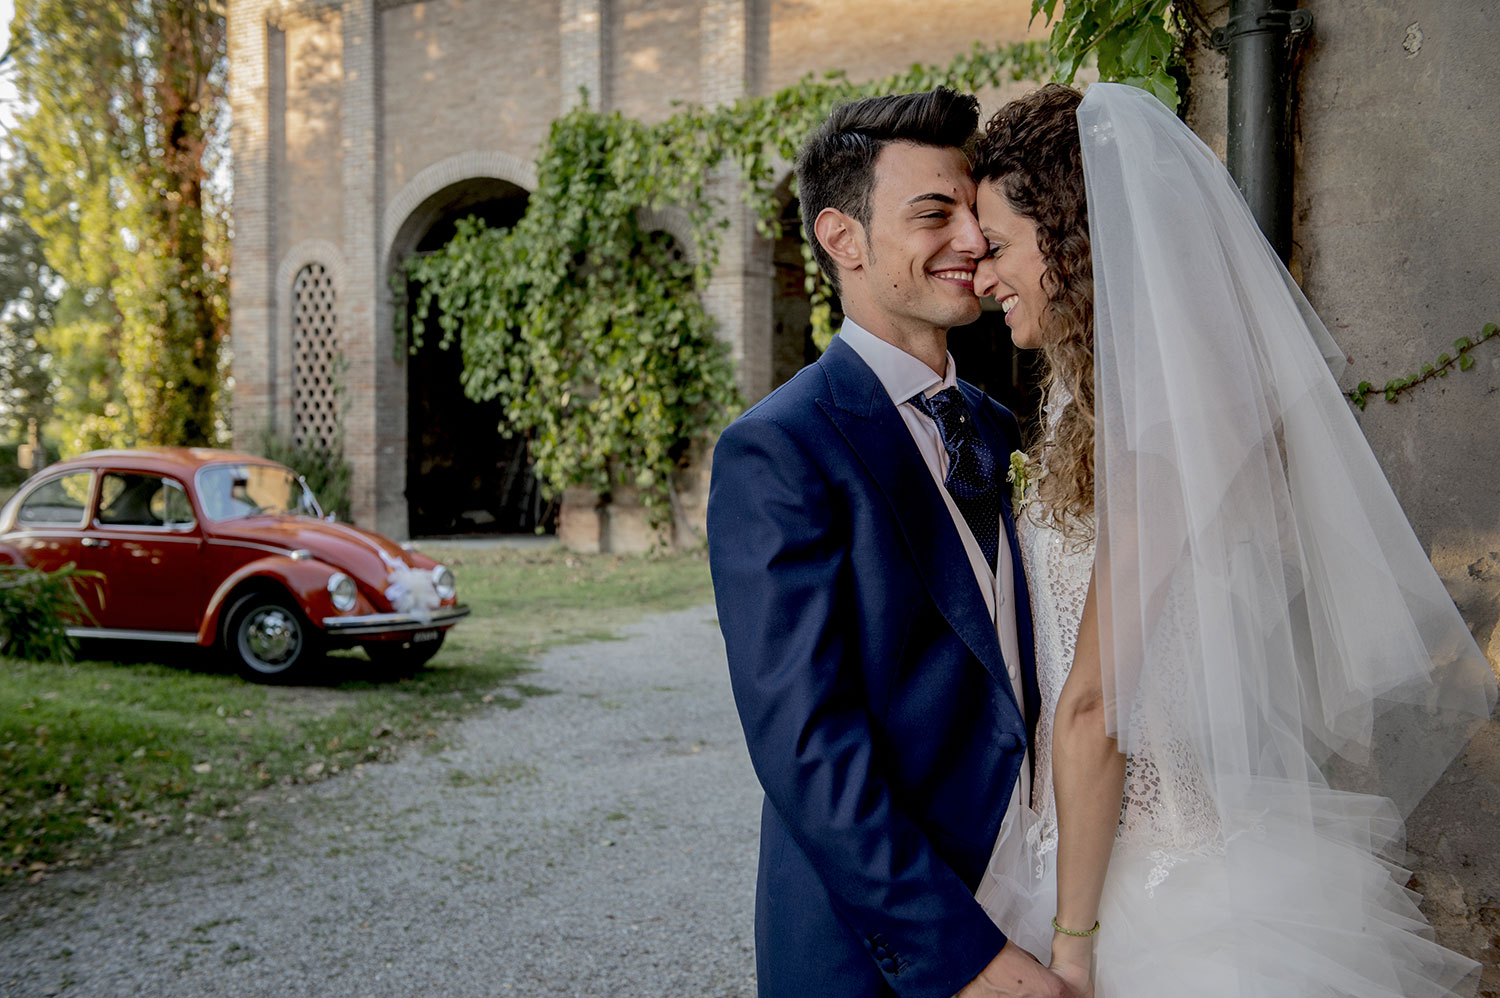 ivano-di-maria-photographer-wedding-erika-federico-10